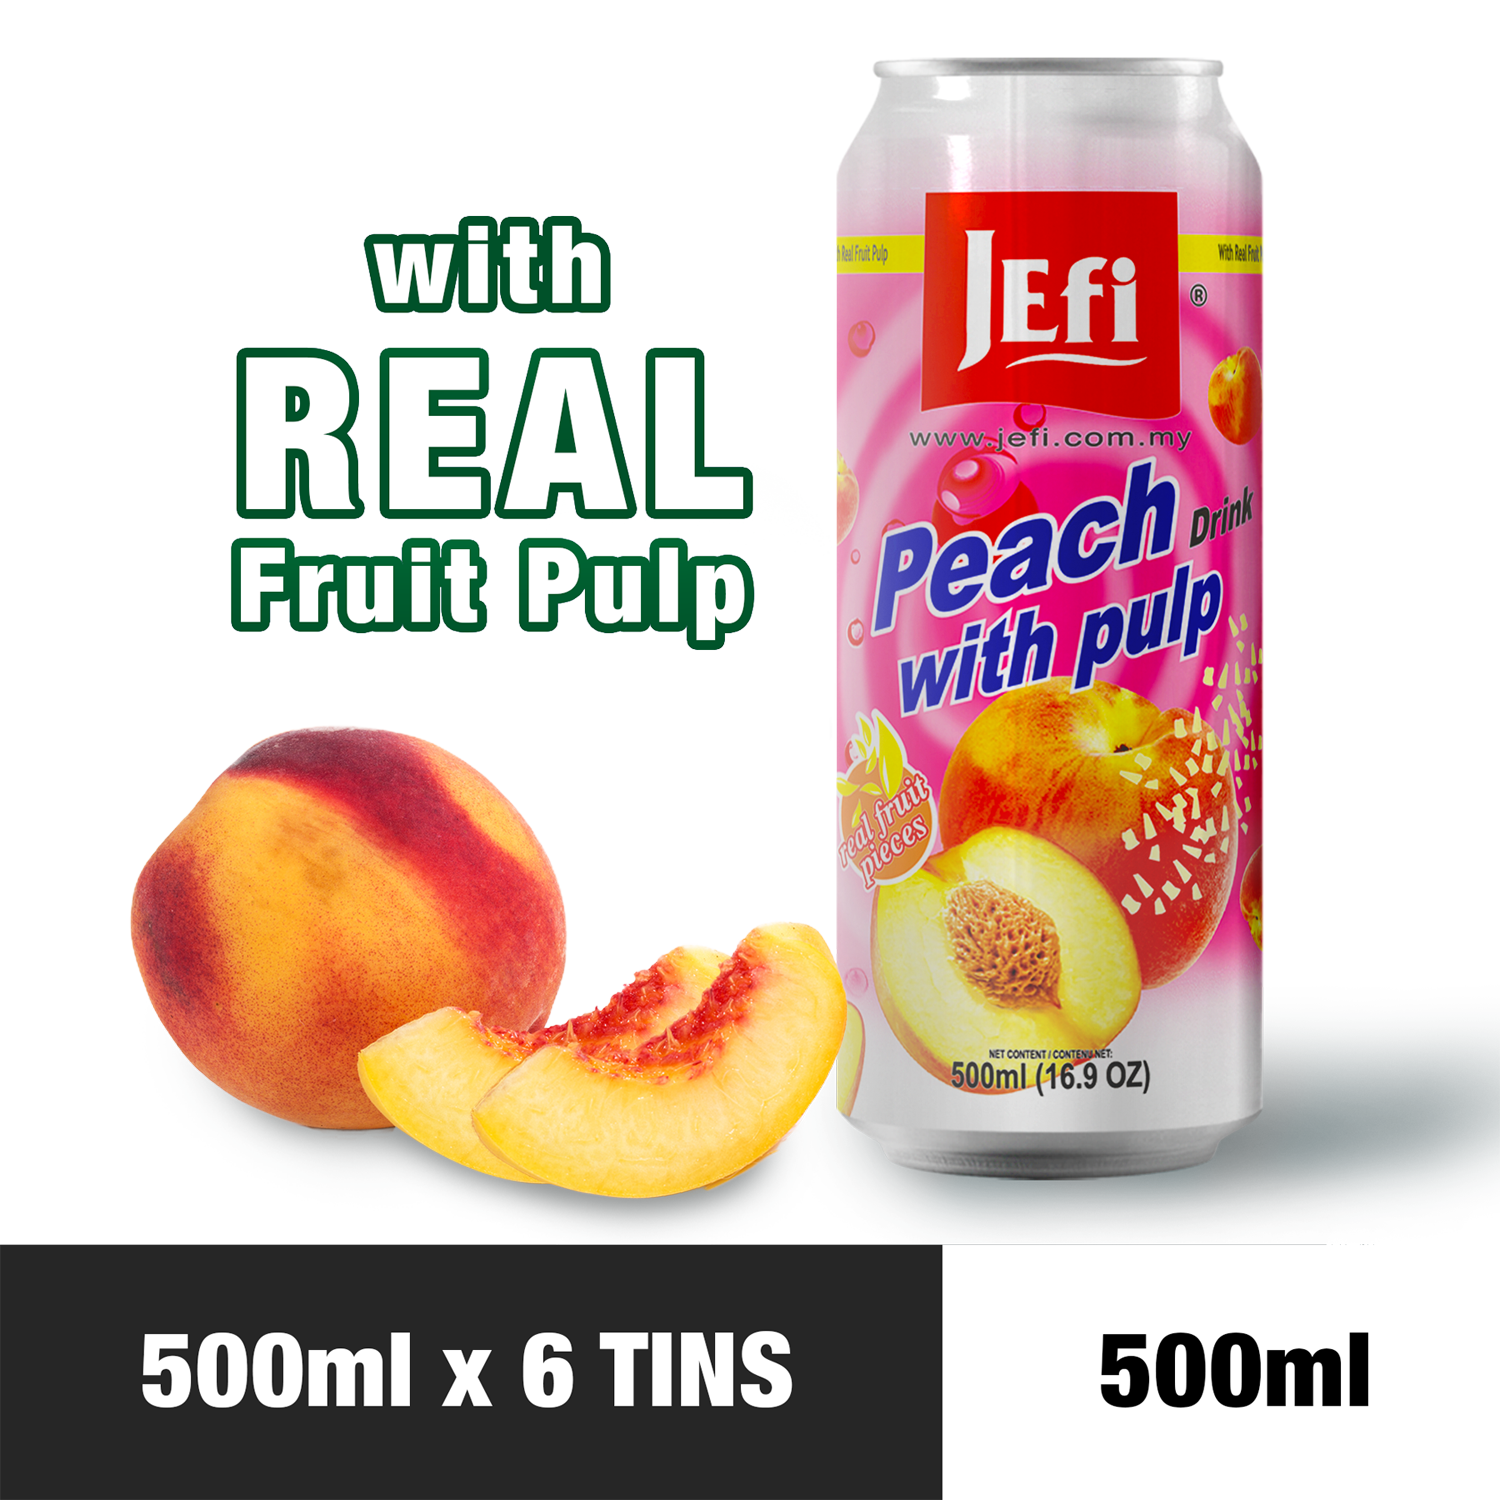 JEFI Peach Drink with Real Fruit Pulp (500ml x 6tins)